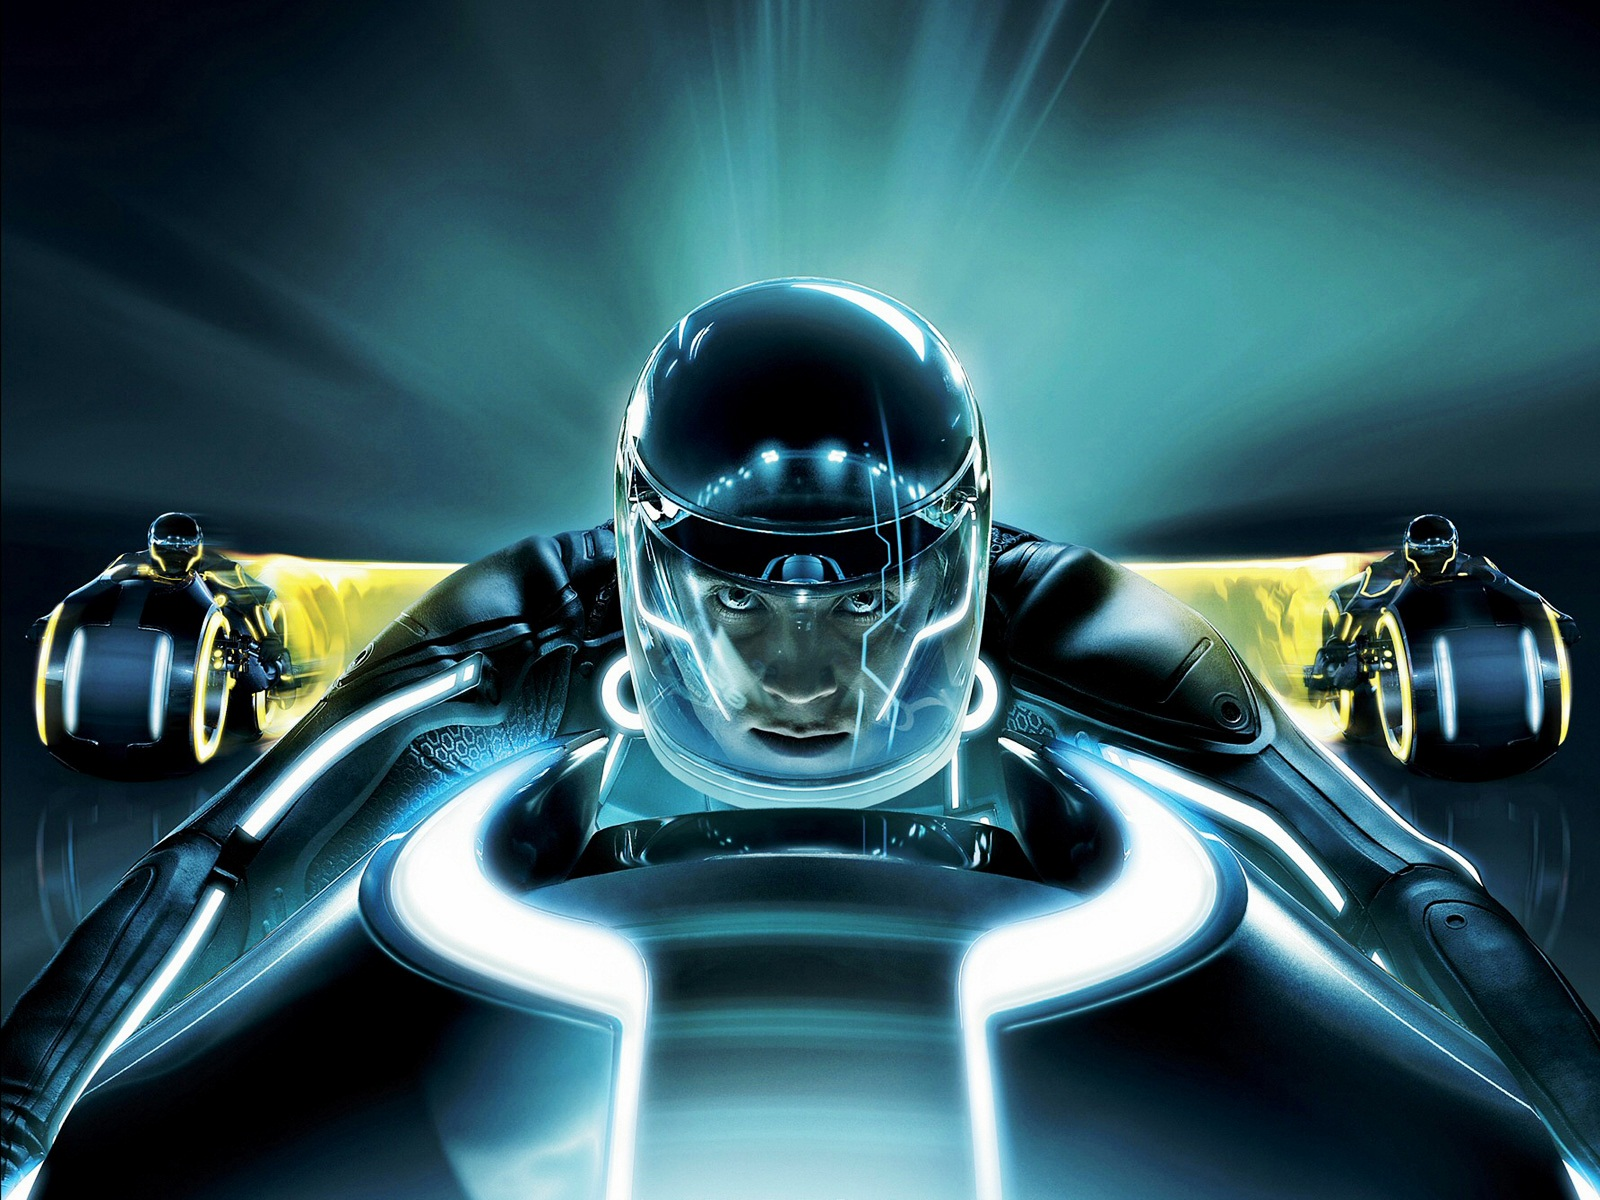 2010 Tron Legacy Movie 813.14 Kb